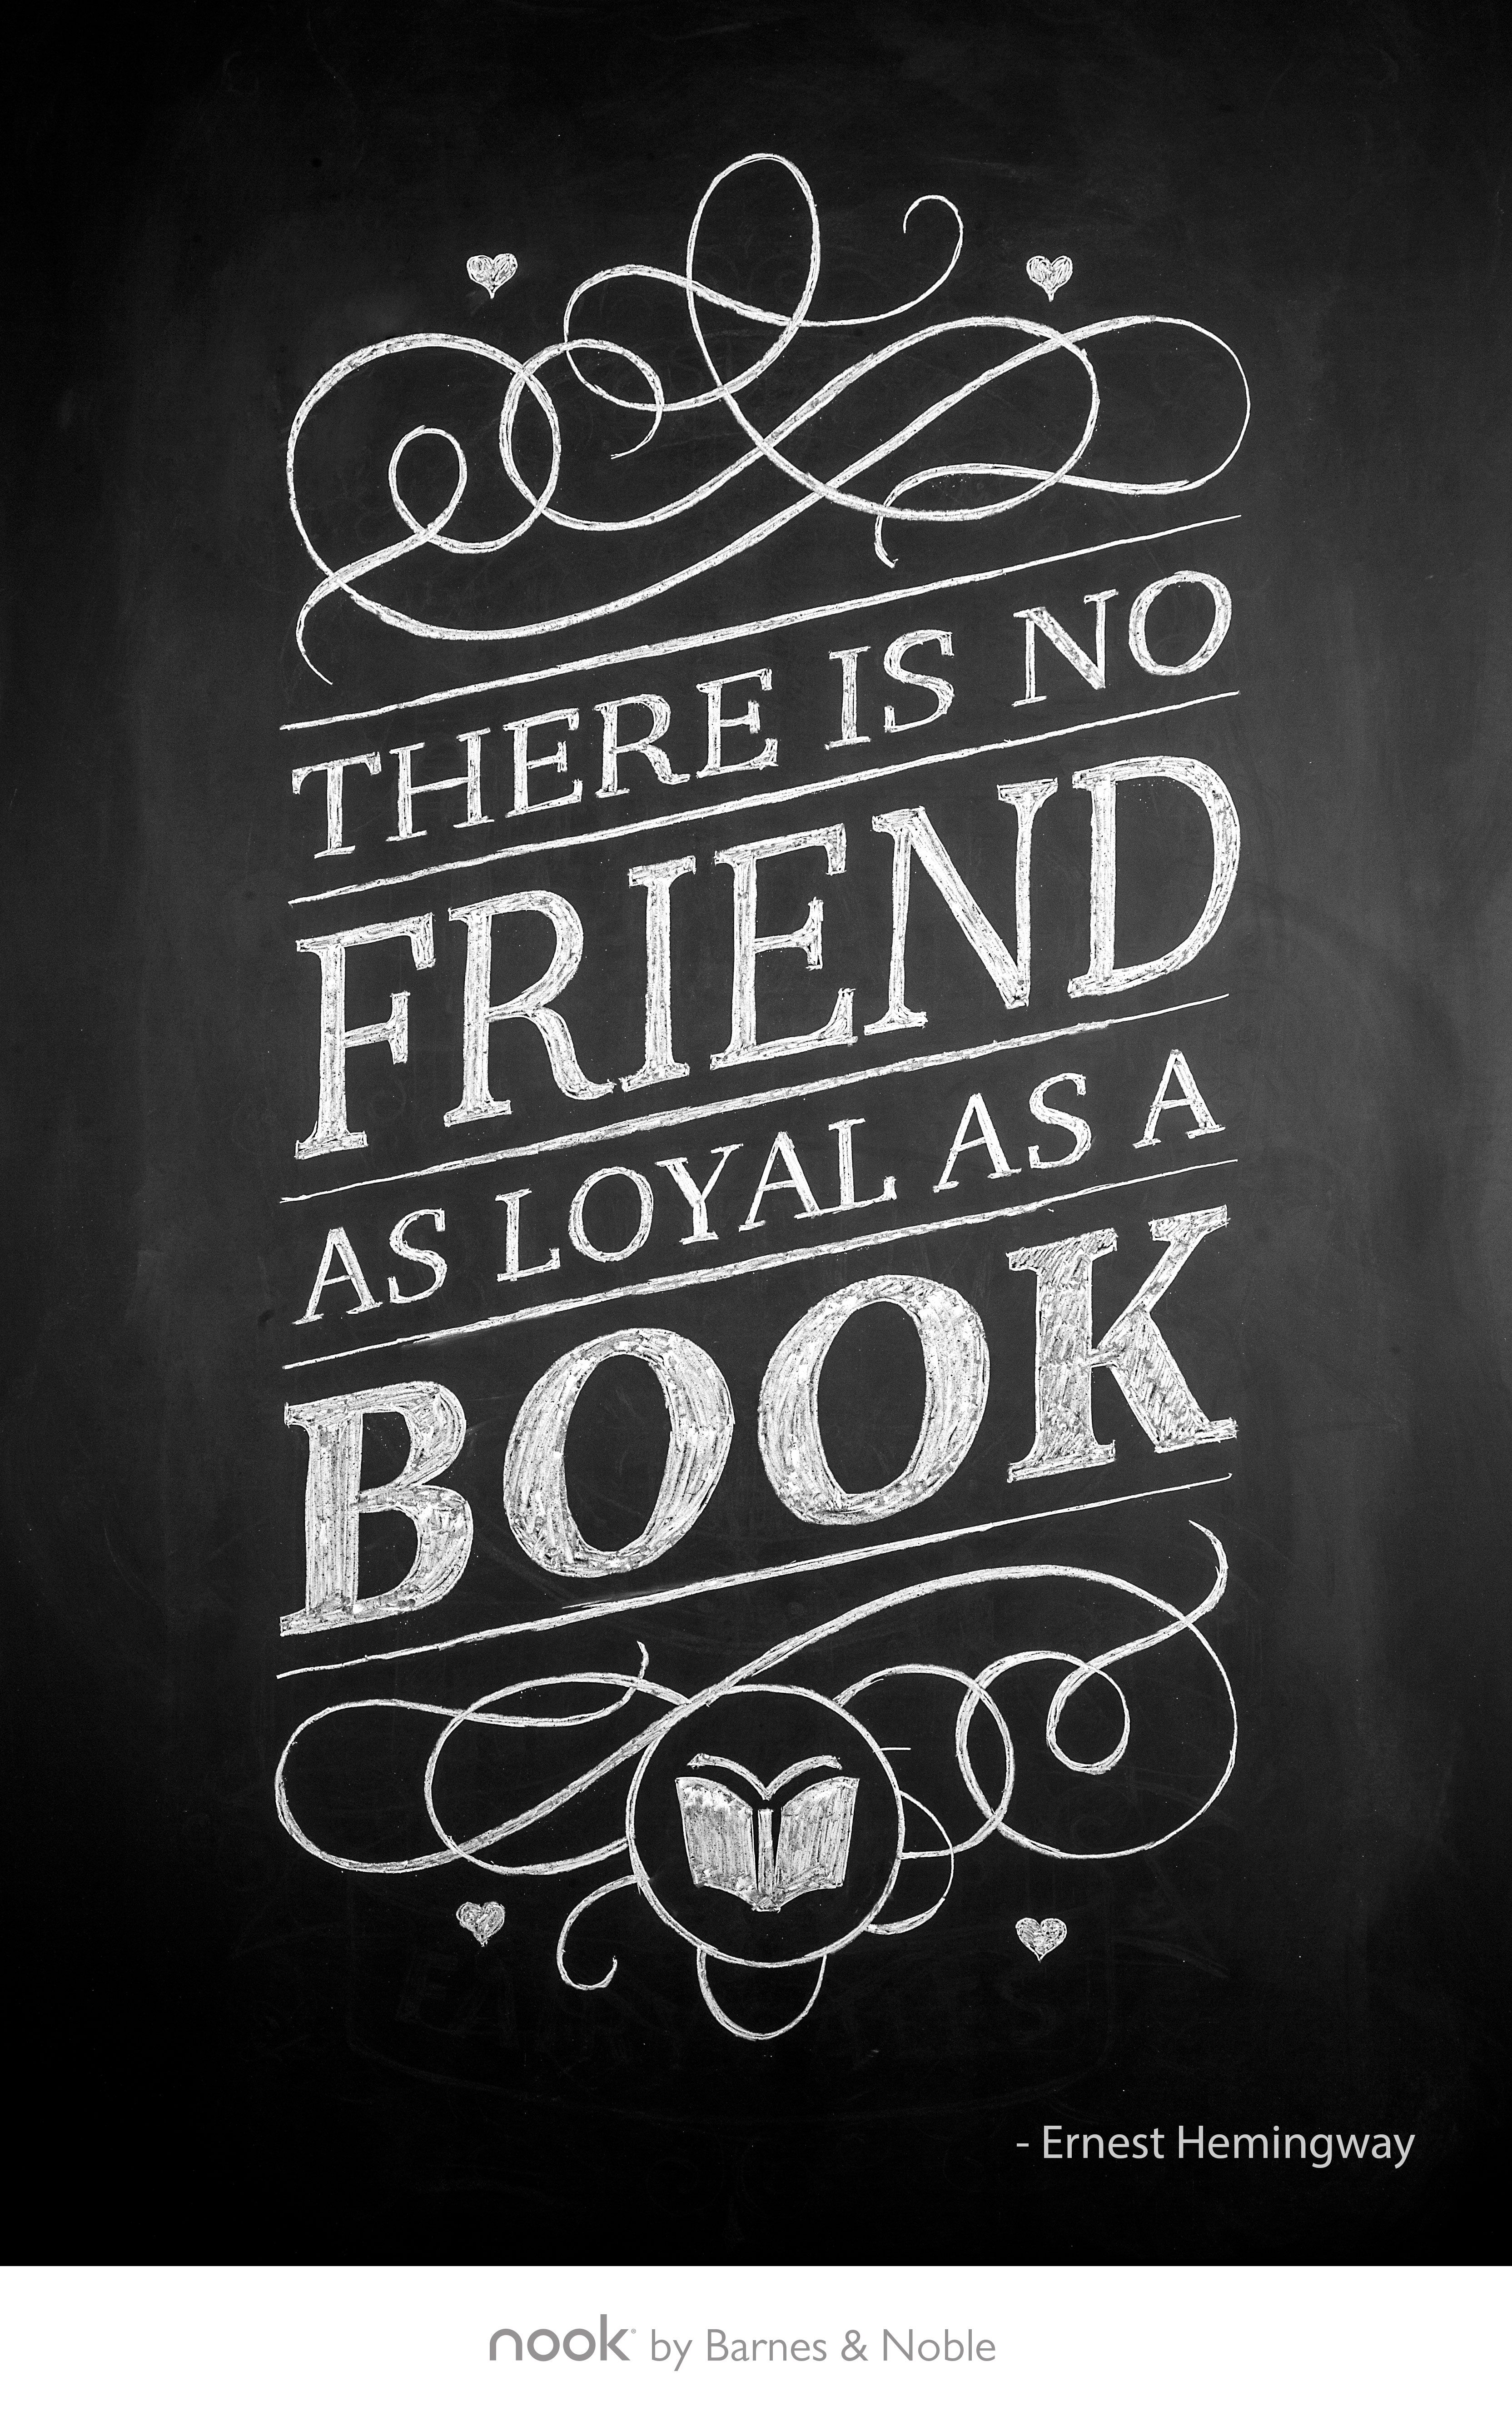 Designs quotes about loyalty quotes about loyalty quotes about loyalty - January 29th There Is No Friend As Loyal As A Book No Friendslibrary Quoteslibrary